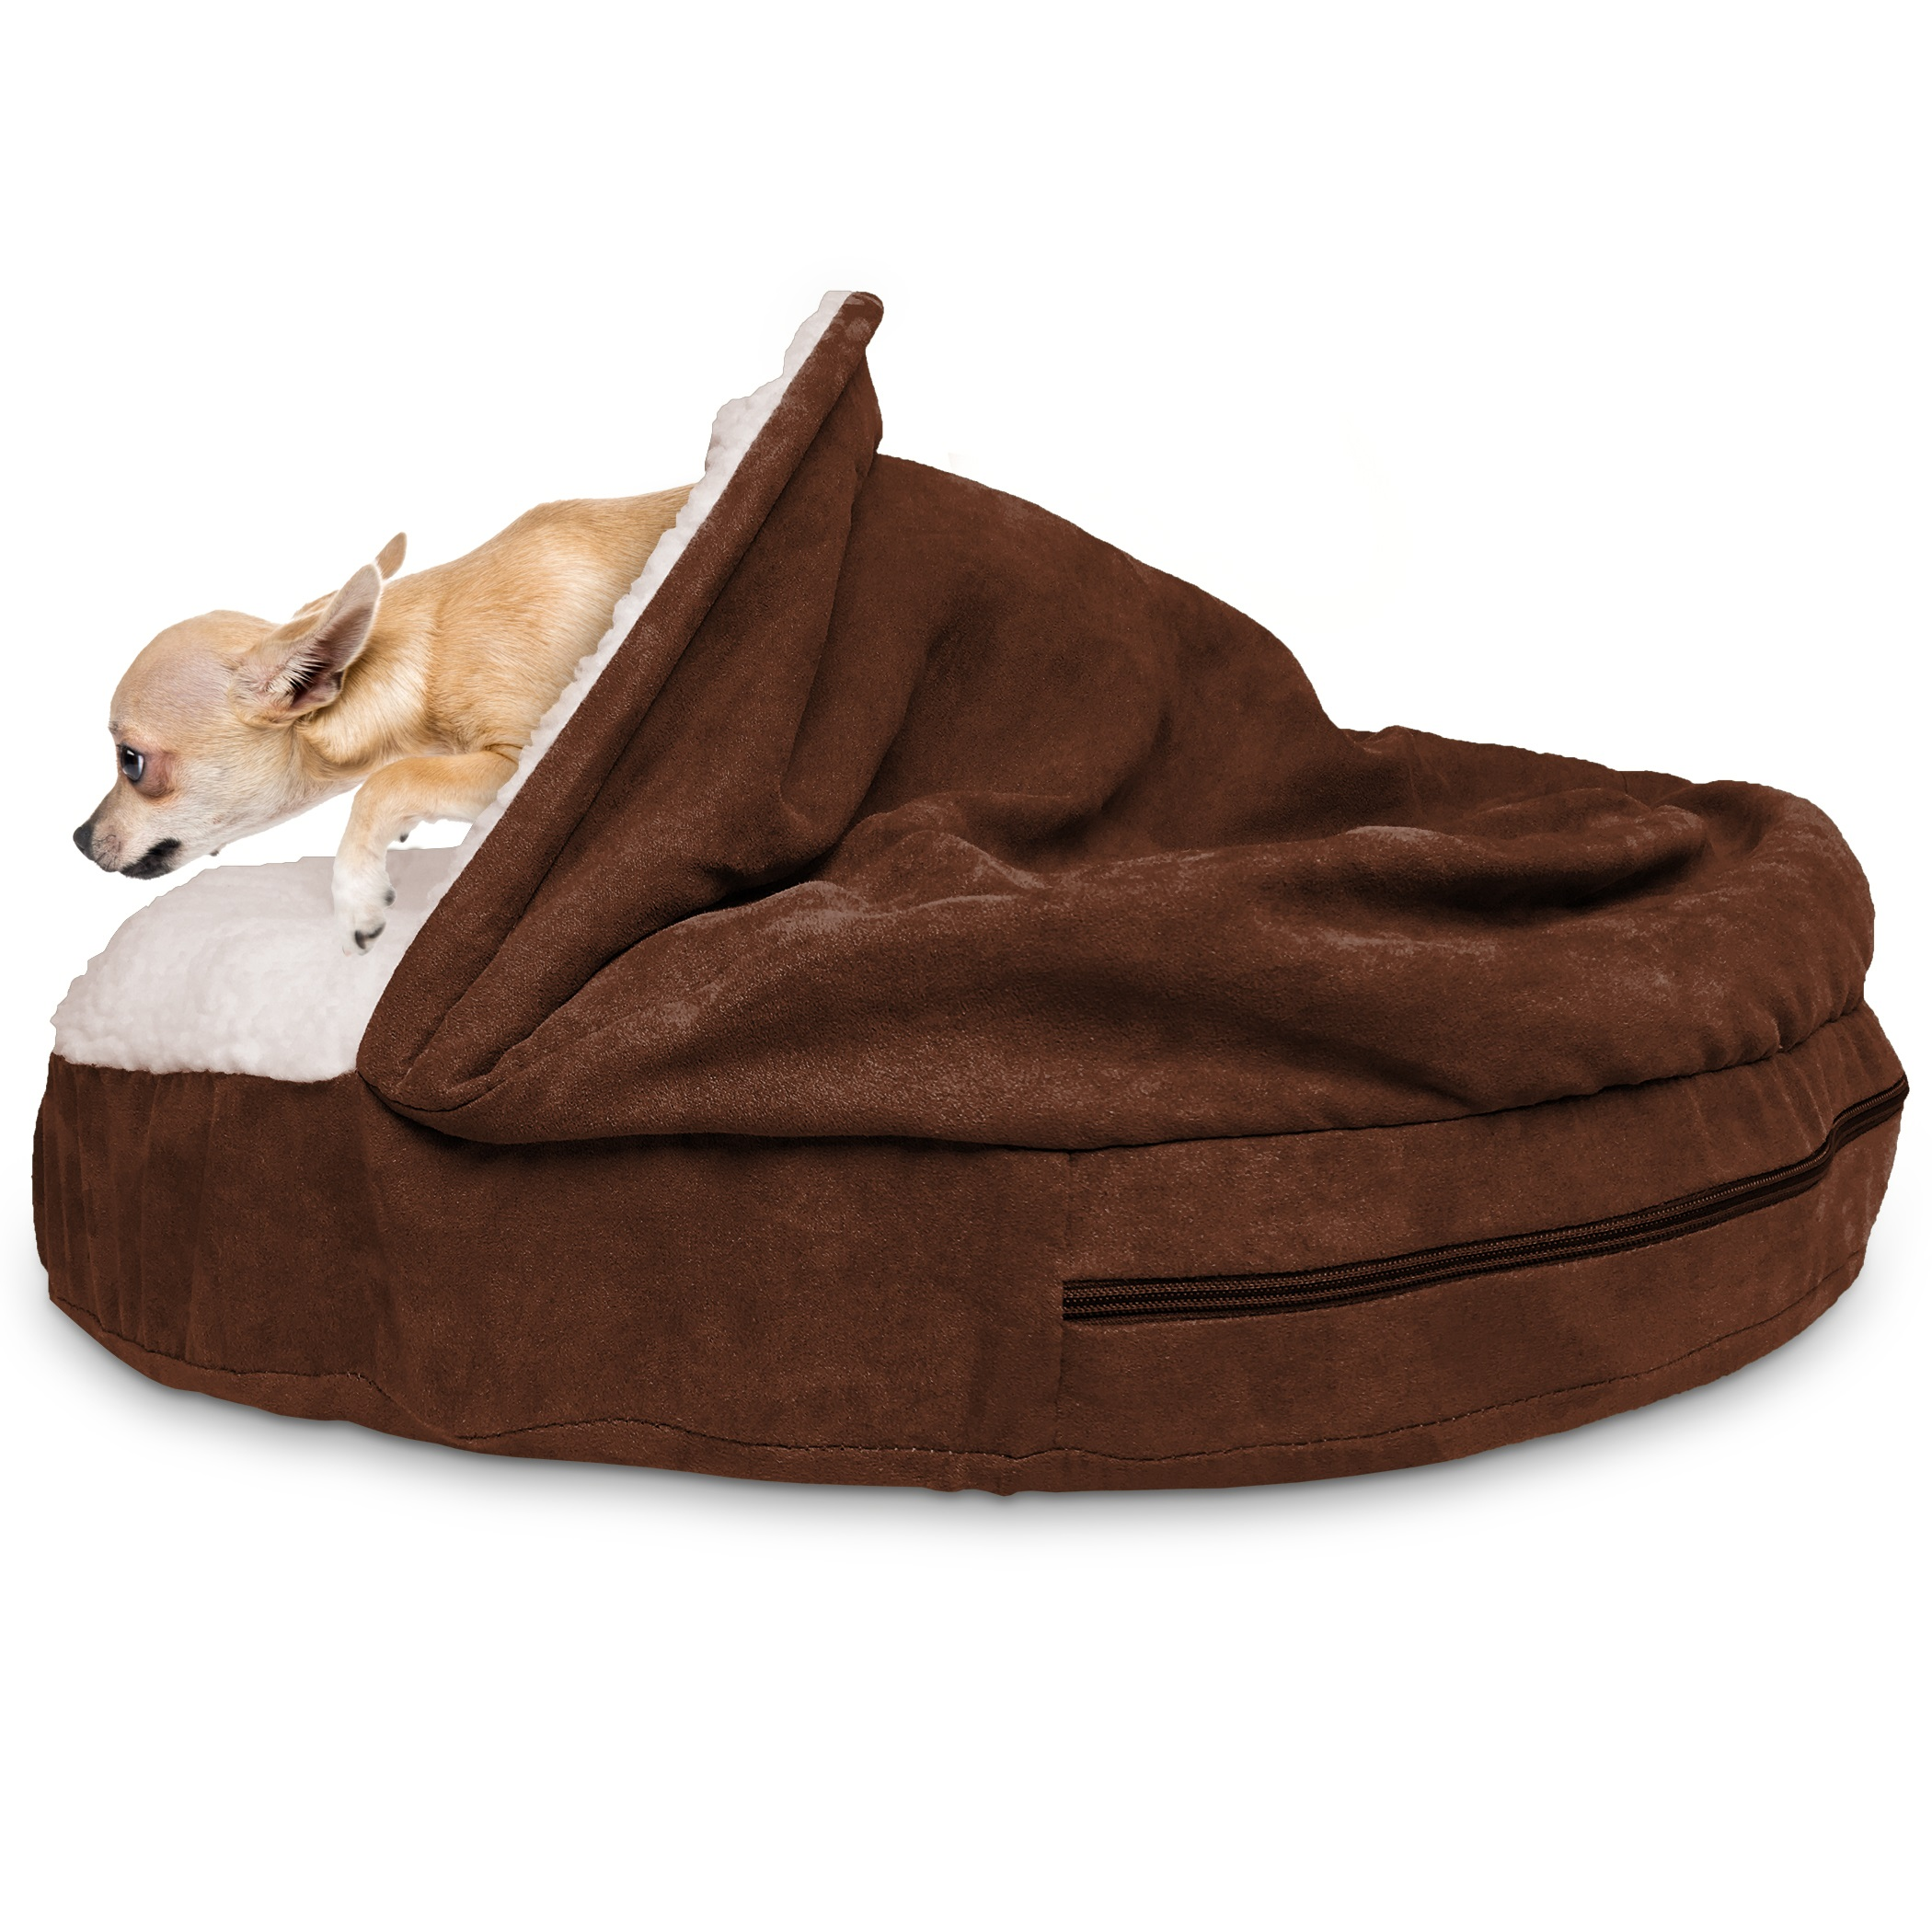 furhaven faux sheepskin snuggery orthopedic dog cave bed pet bed